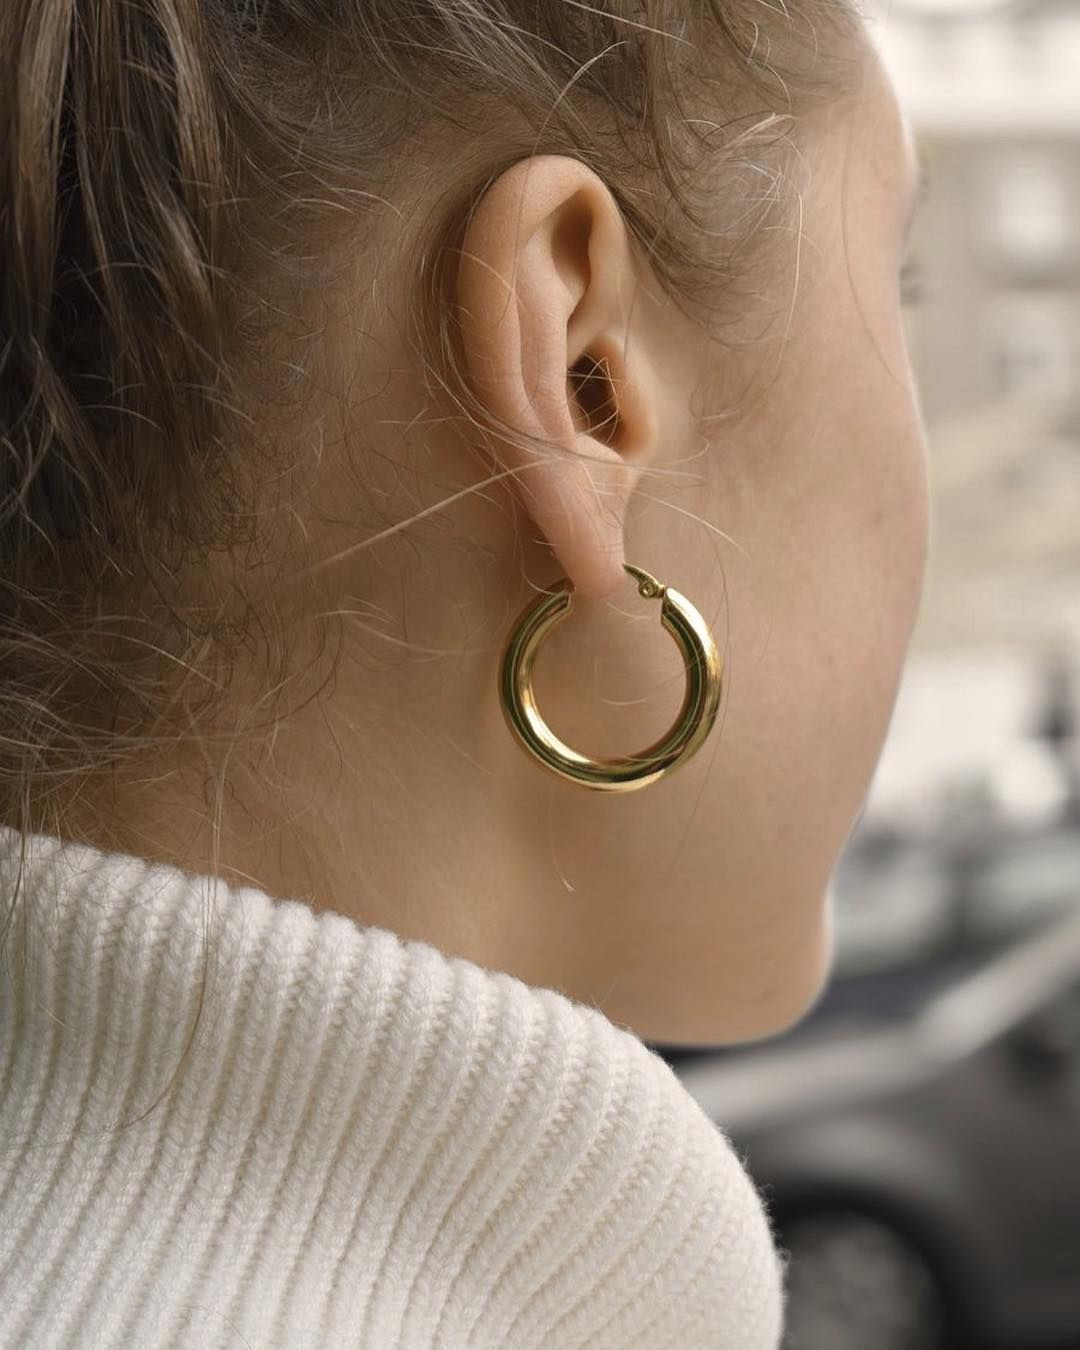 7ae555e14 COMMON MUSE Freja hoop earring in Large #jewellery #jewelry #gold #silver  #minimal #minimalism #style #fashion